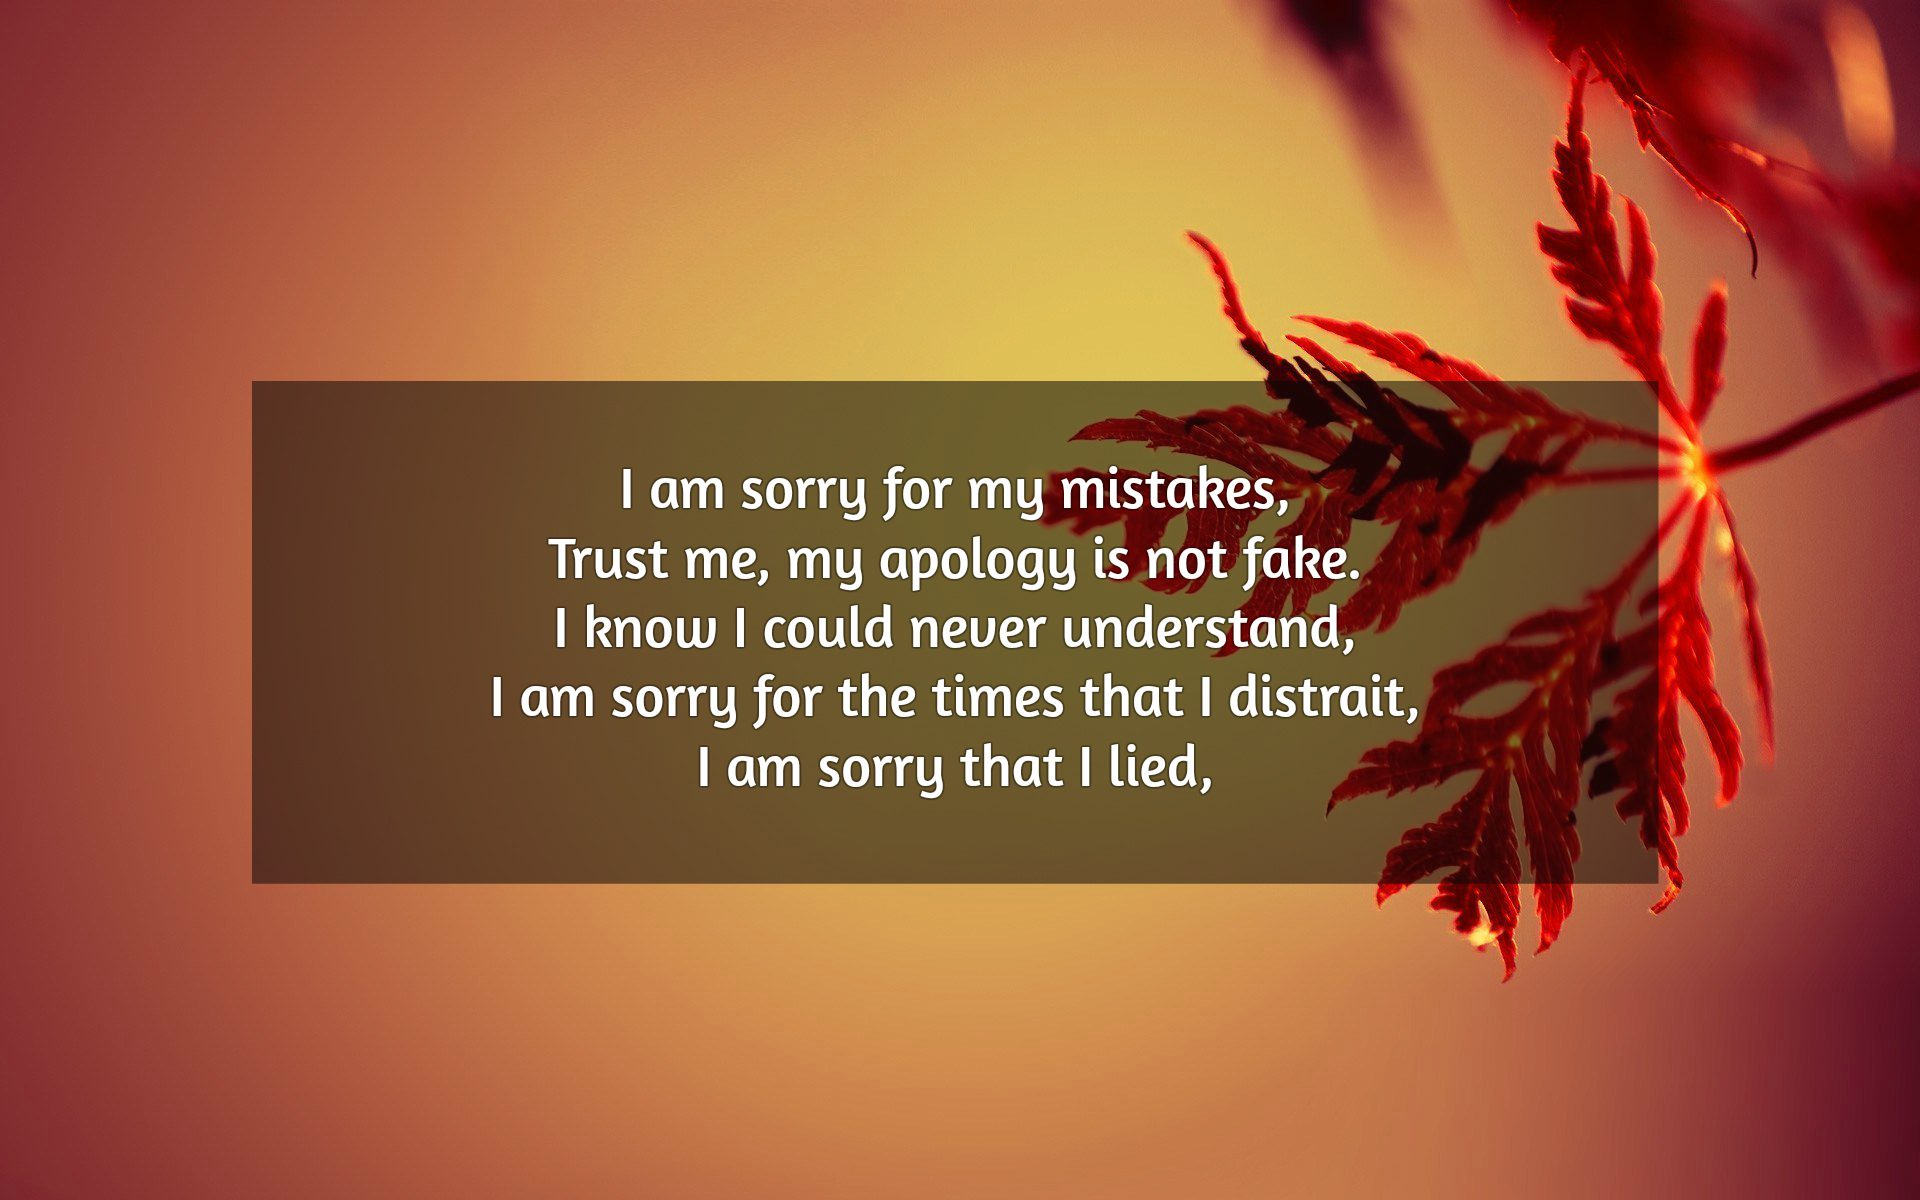 i am sorry for my mistakes